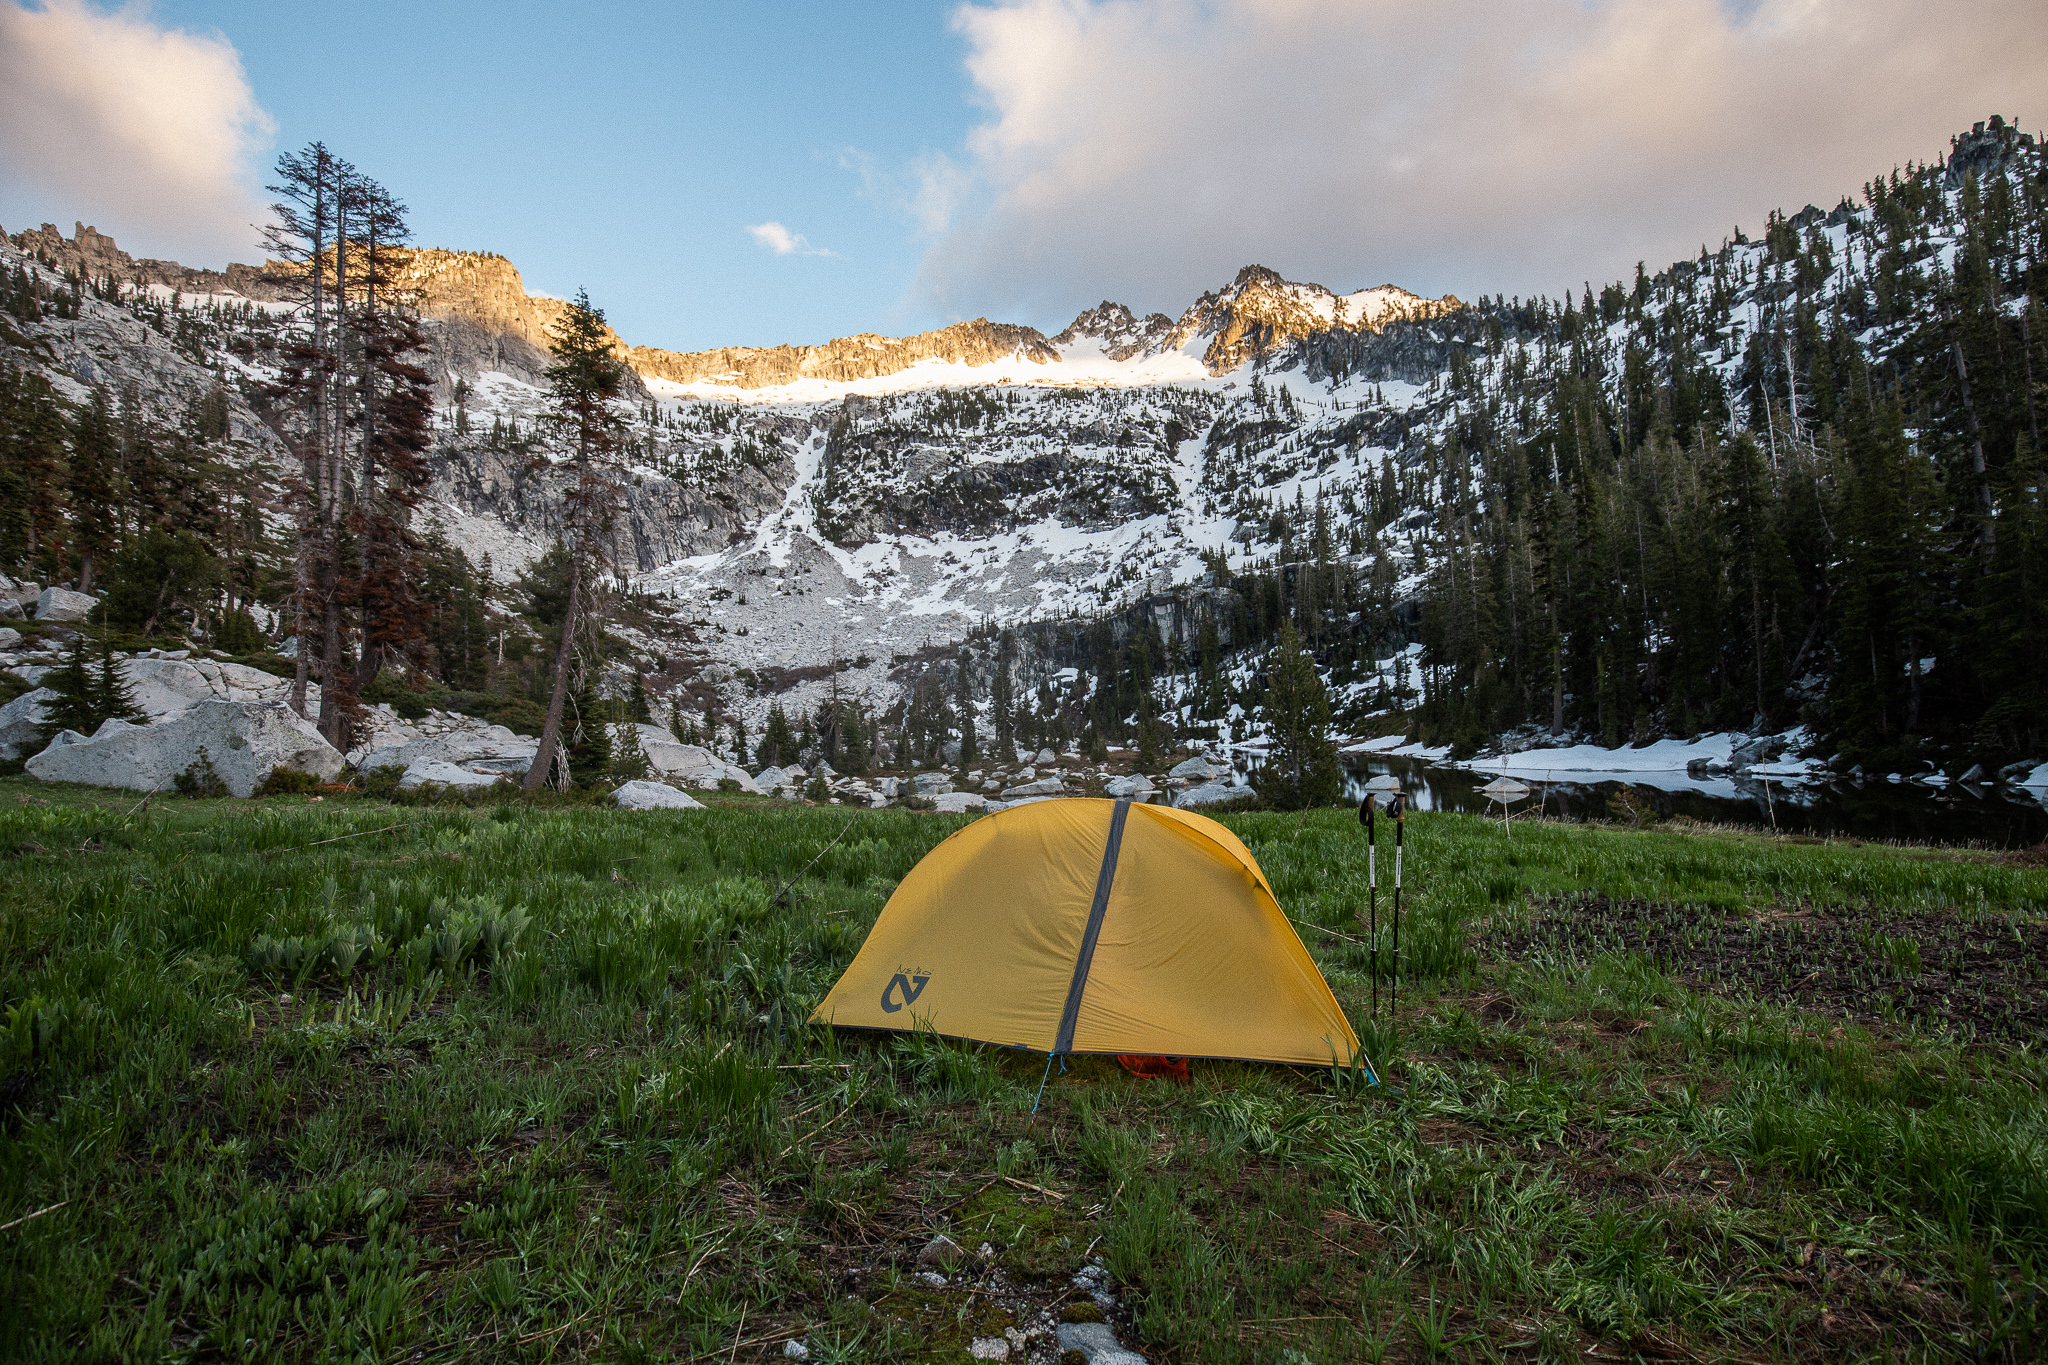 Camping @ El Lake in the Trinity Alps.